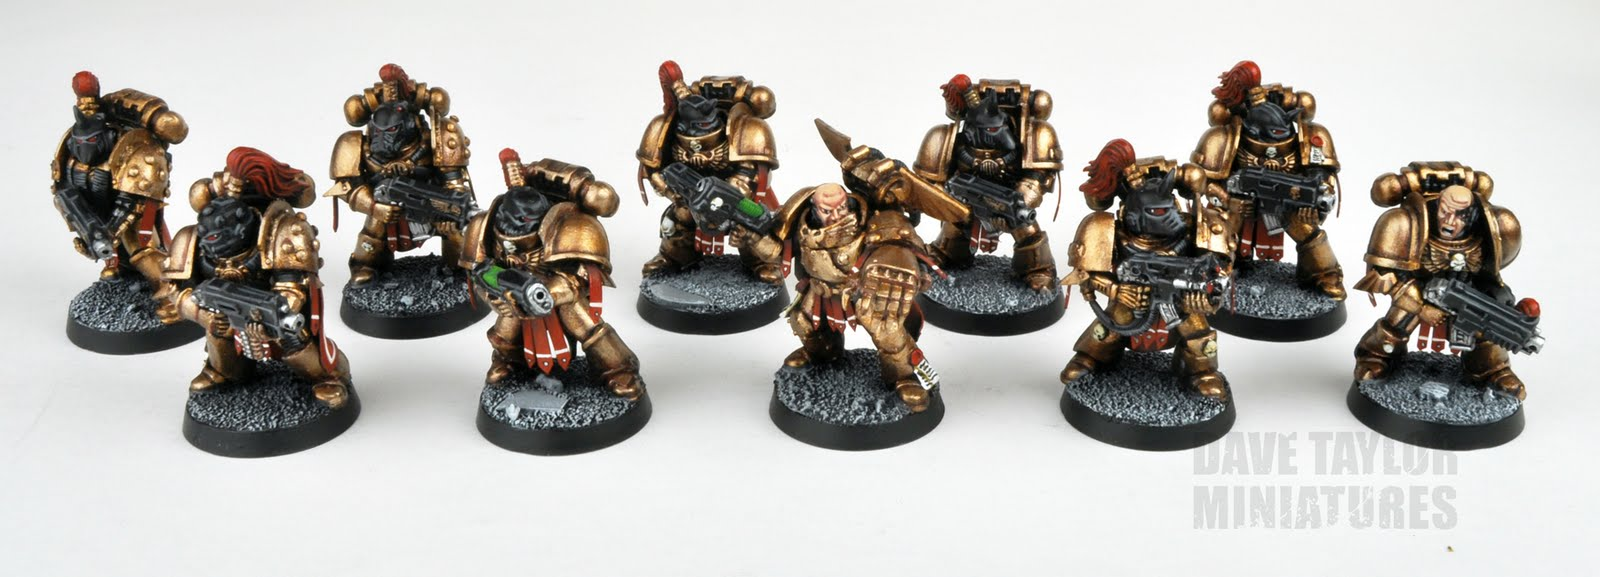 adeptus custodes army rules for dating